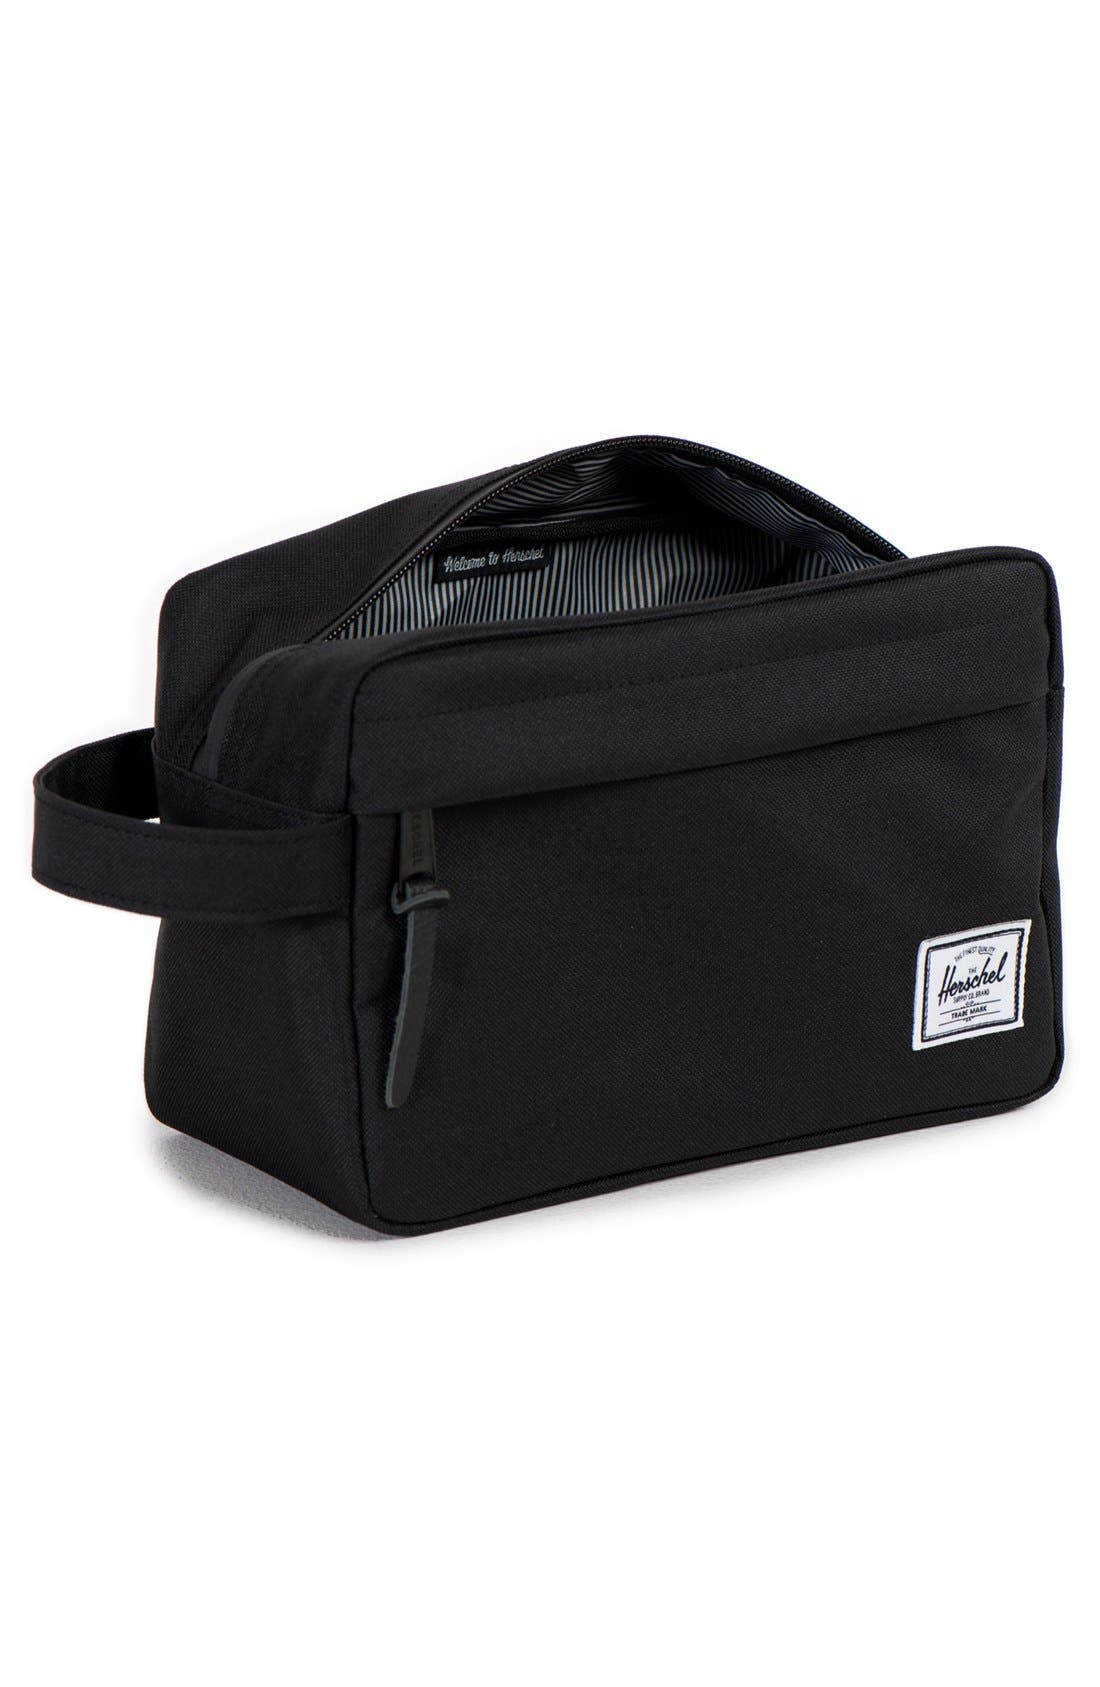 Chapter Toiletry Case,                             Alternate thumbnail 10, color,                             BLACK